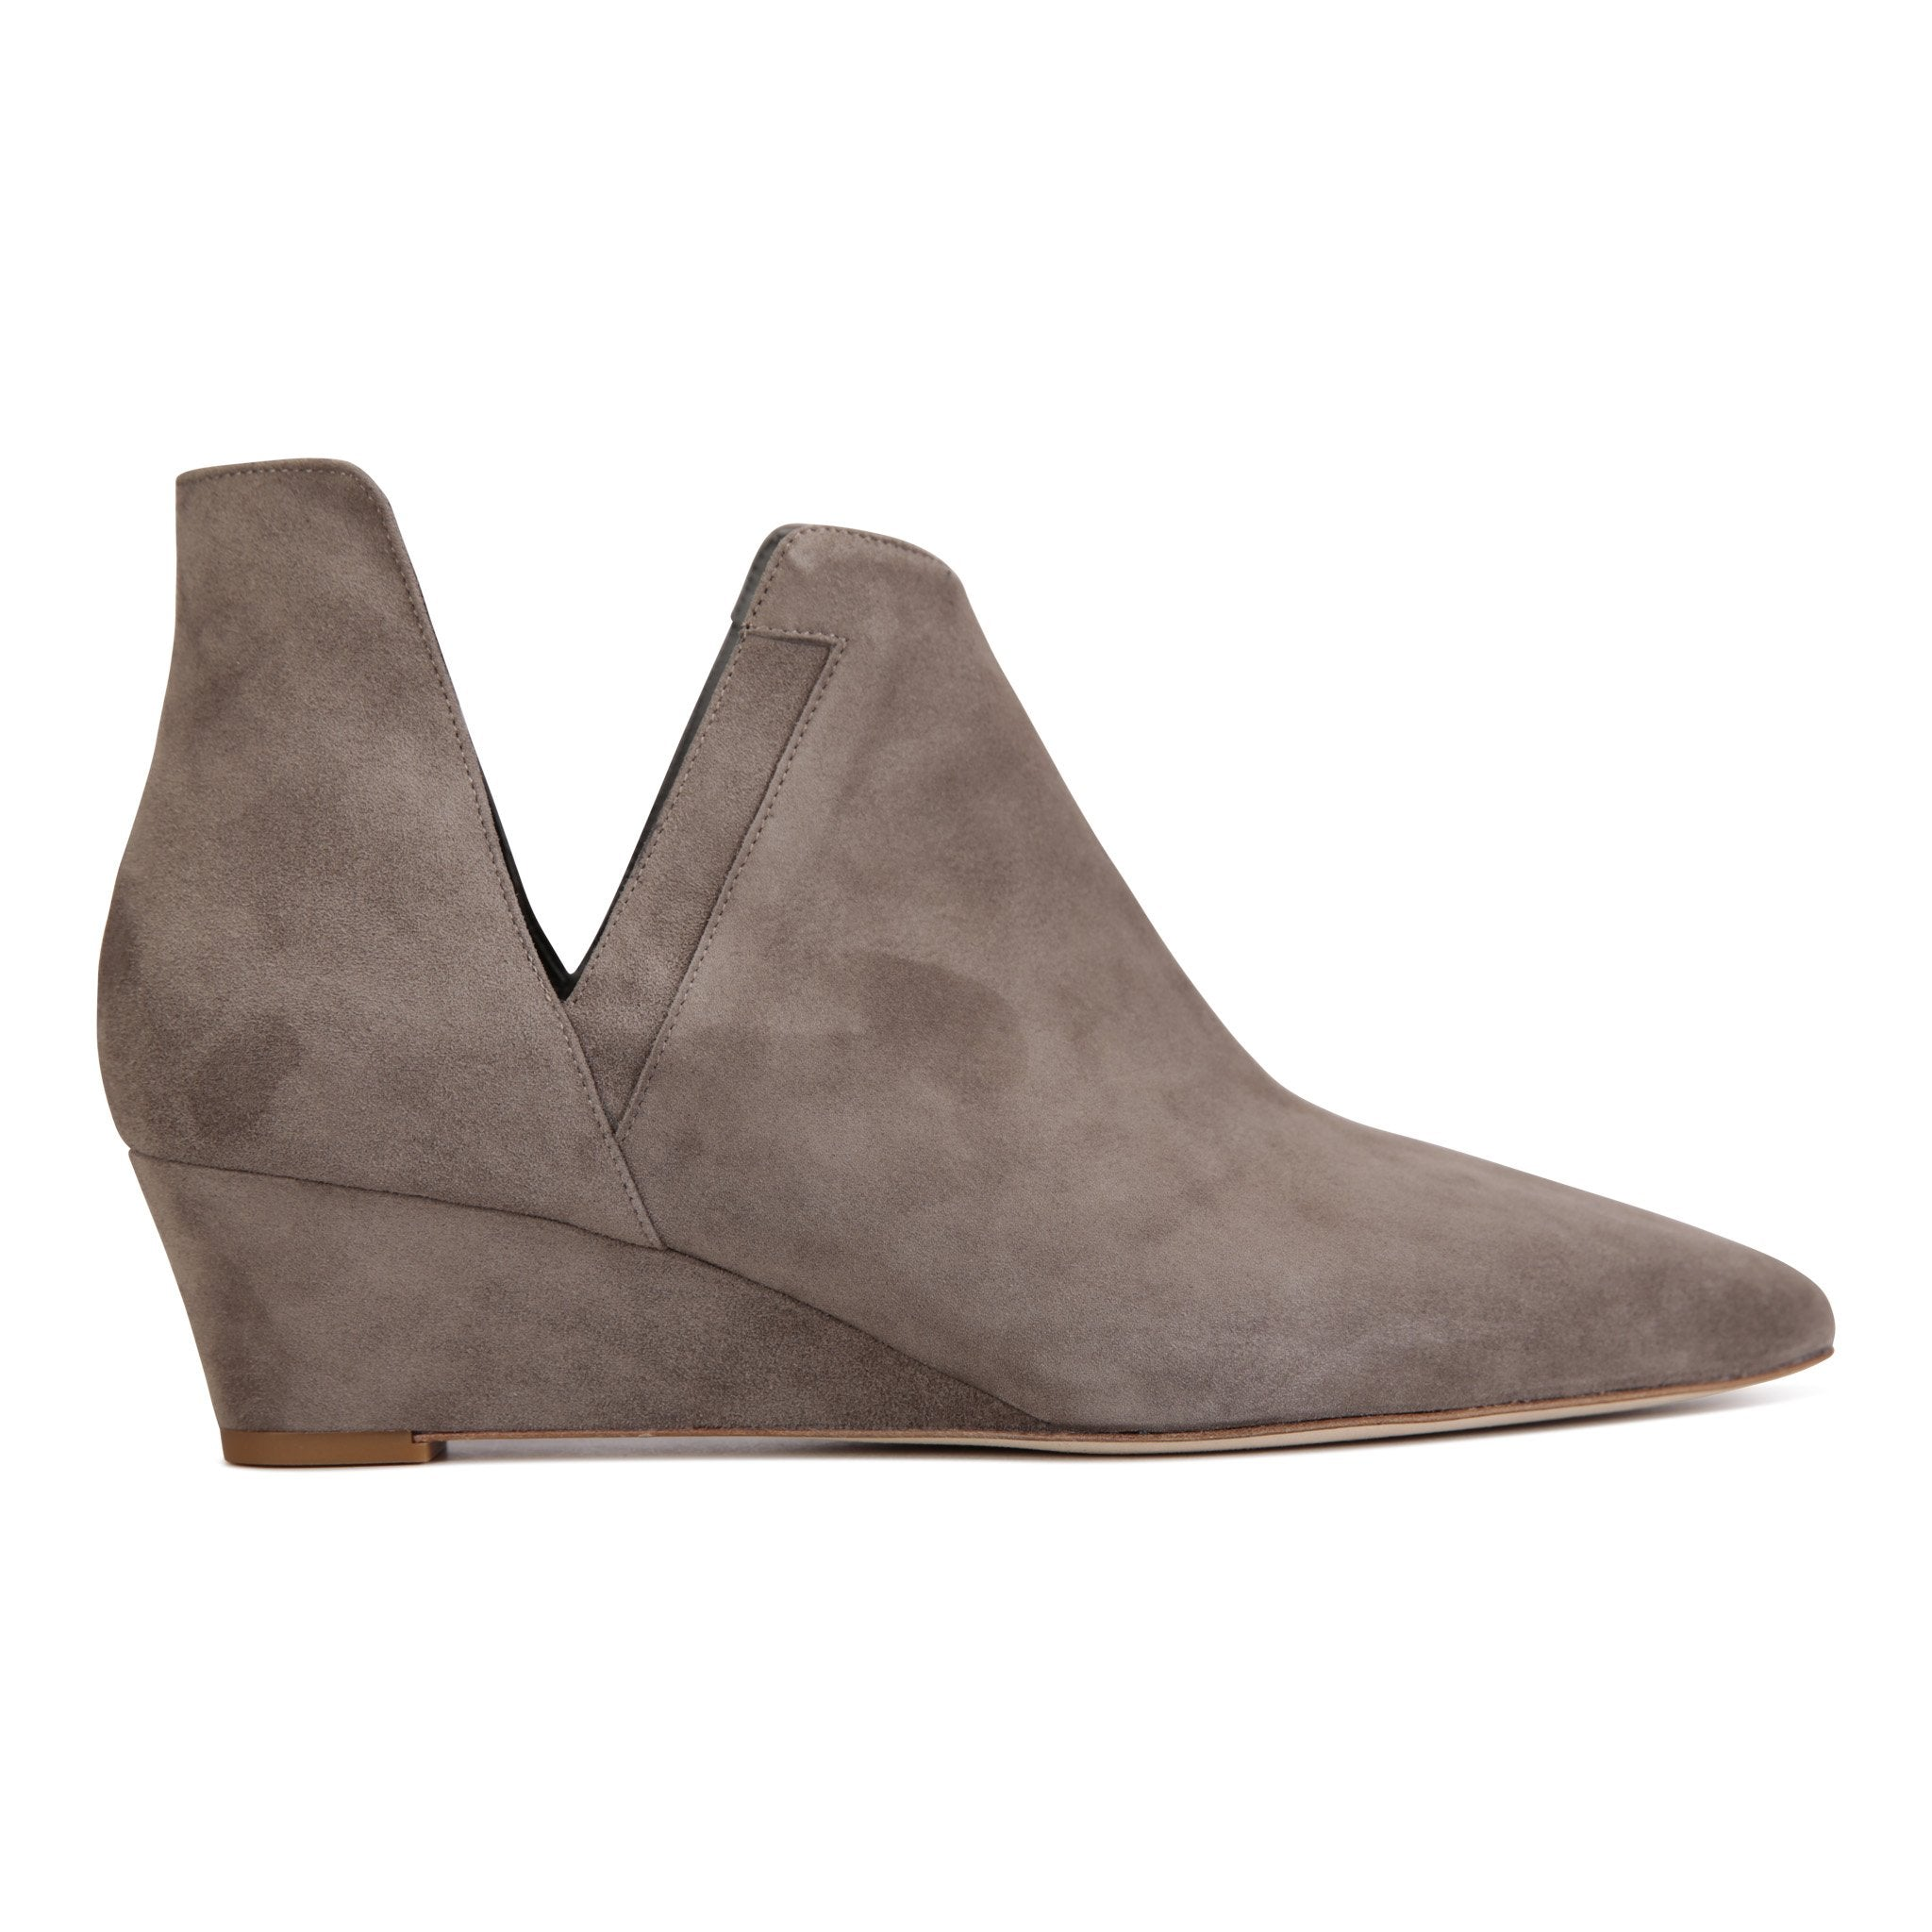 SYRENE - Velukid Taupe, VIAJIYU - Women's Hand Made Sustainable Luxury Shoes. Made in Italy. Made to Order.